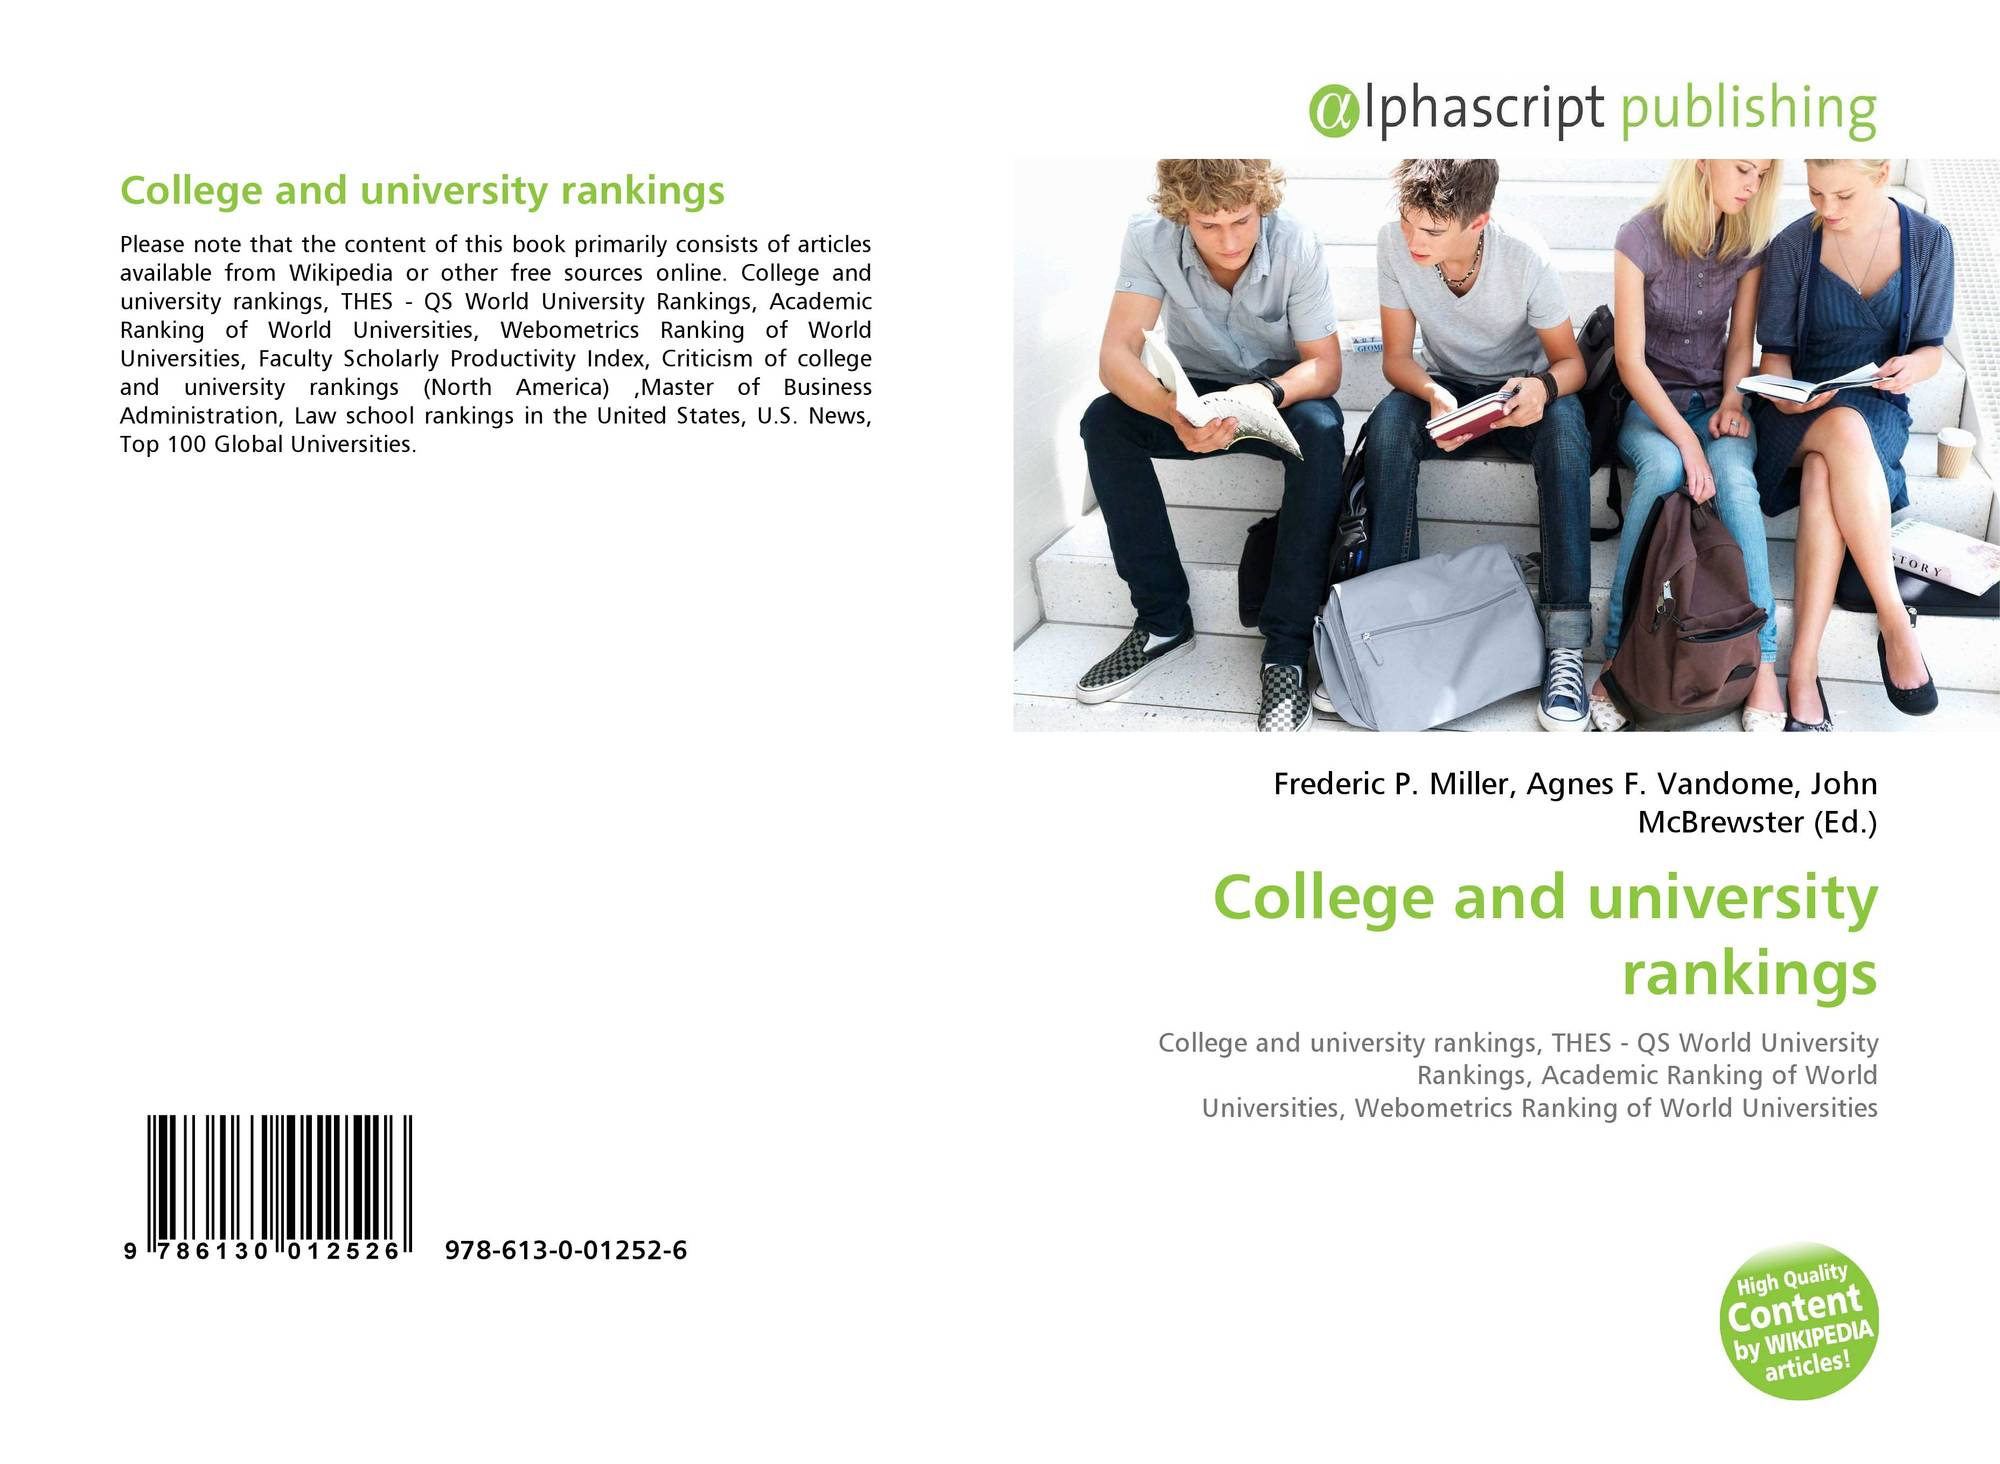 College and university rankings, 978-613-0-01252-6, 6130012527